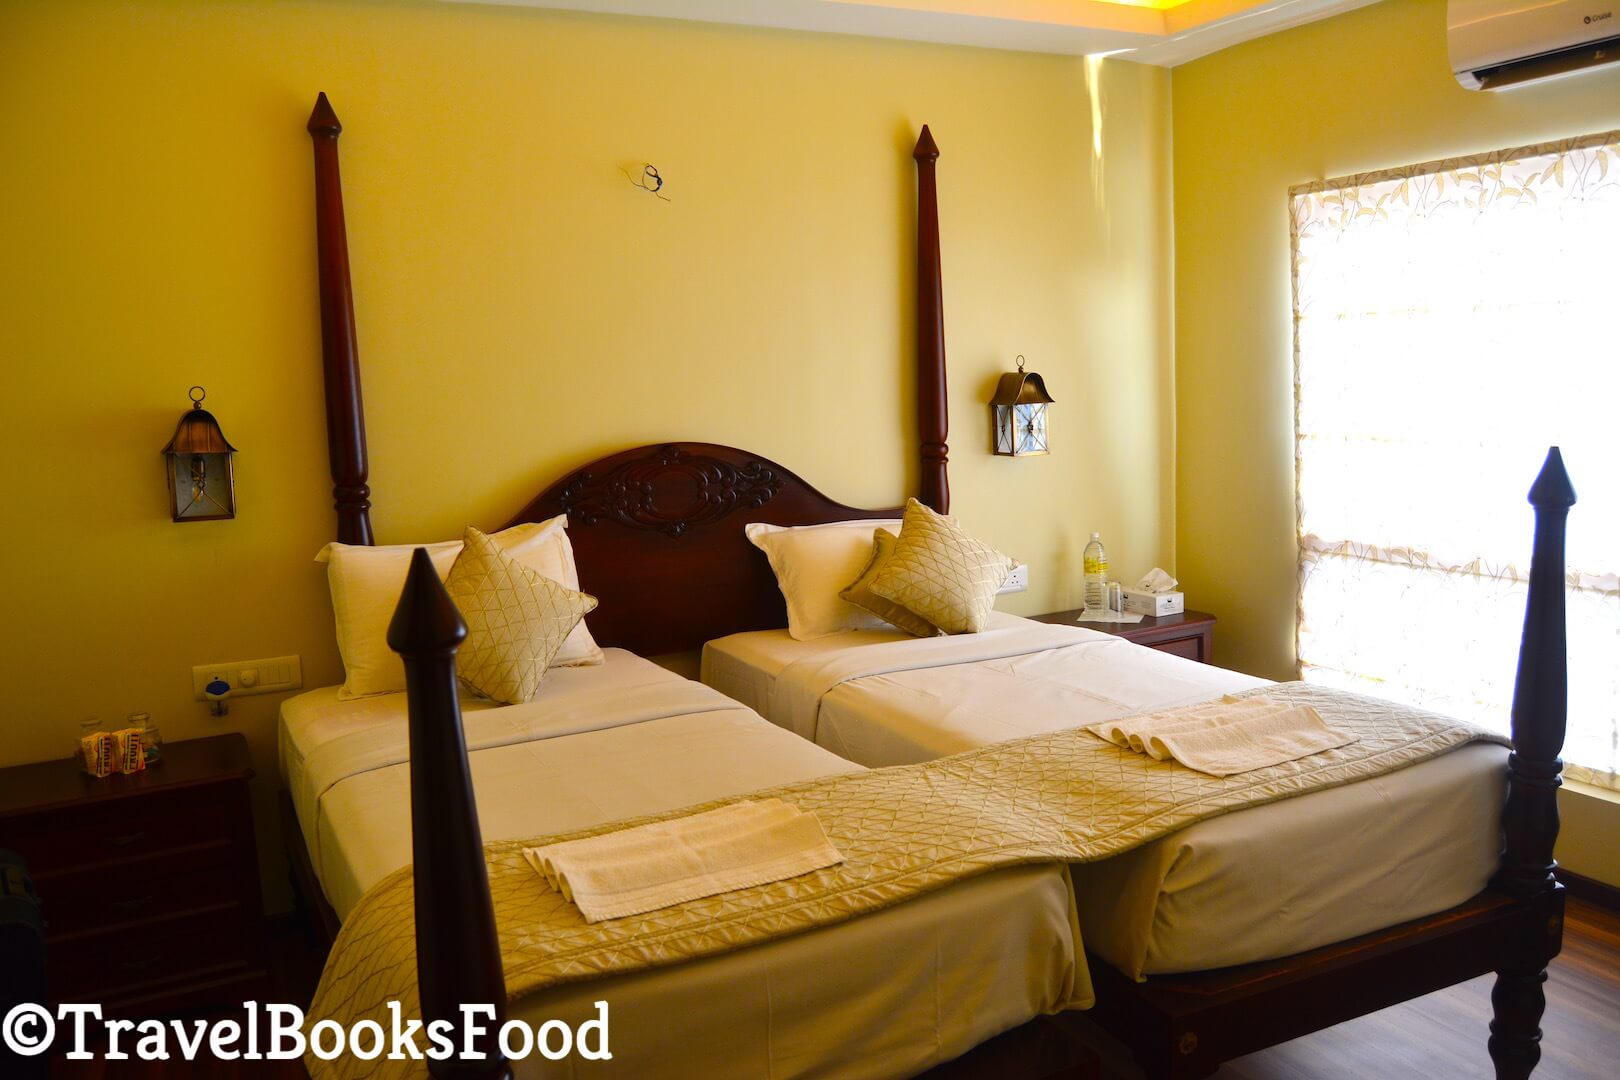 Photo of bedroom inside Spice Routes Luxury Houseboat in Kerala, India